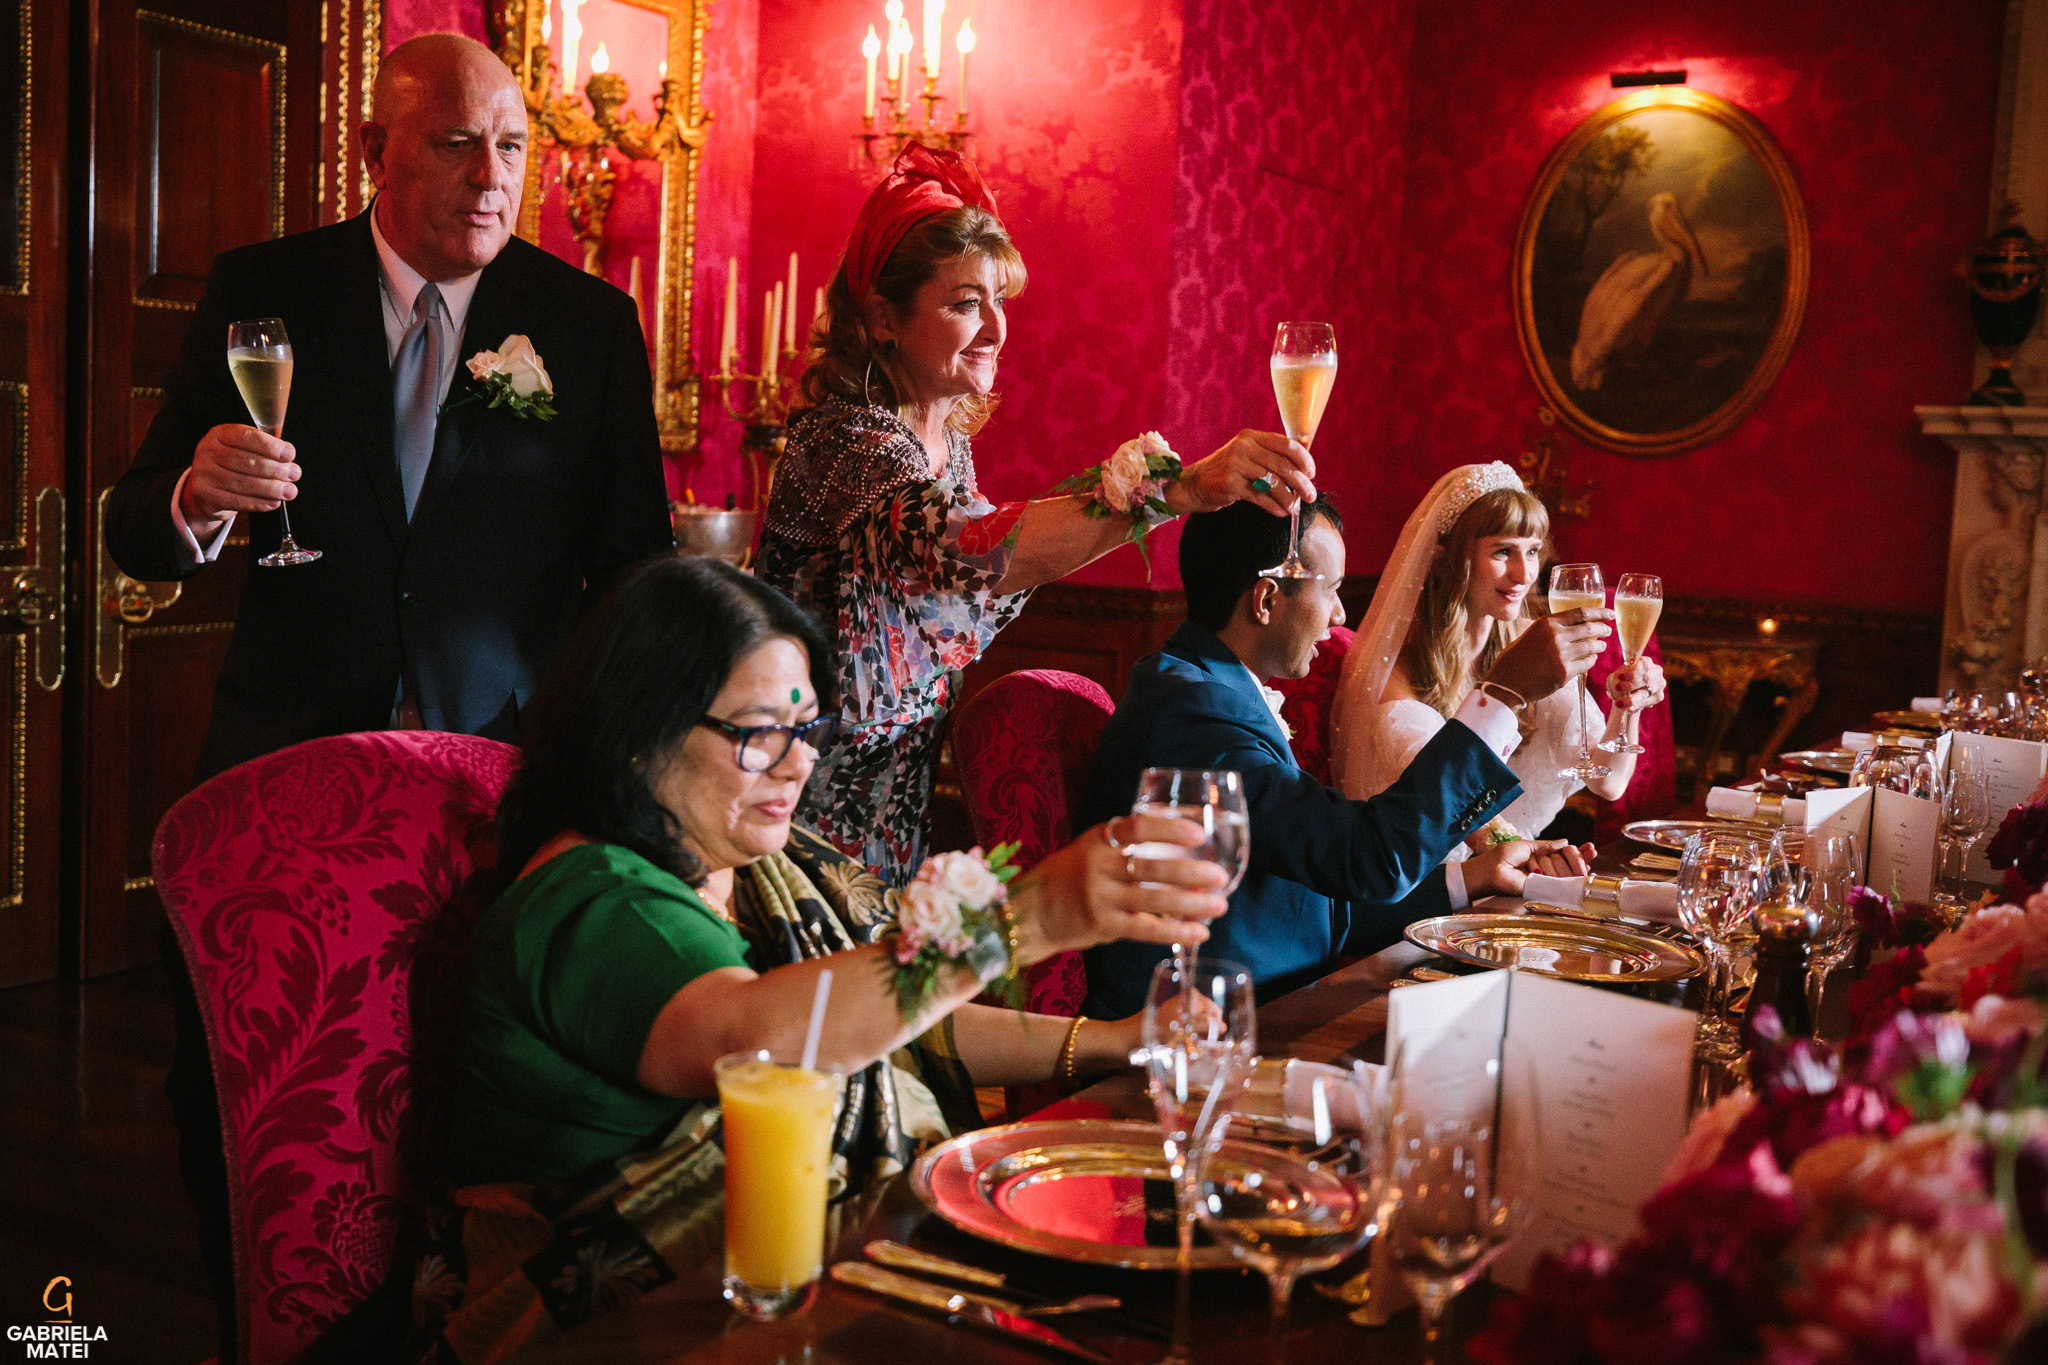 Wedding guests raising a glass for the married couple in Wiliam Kent House Room at The Ritz hotel in London